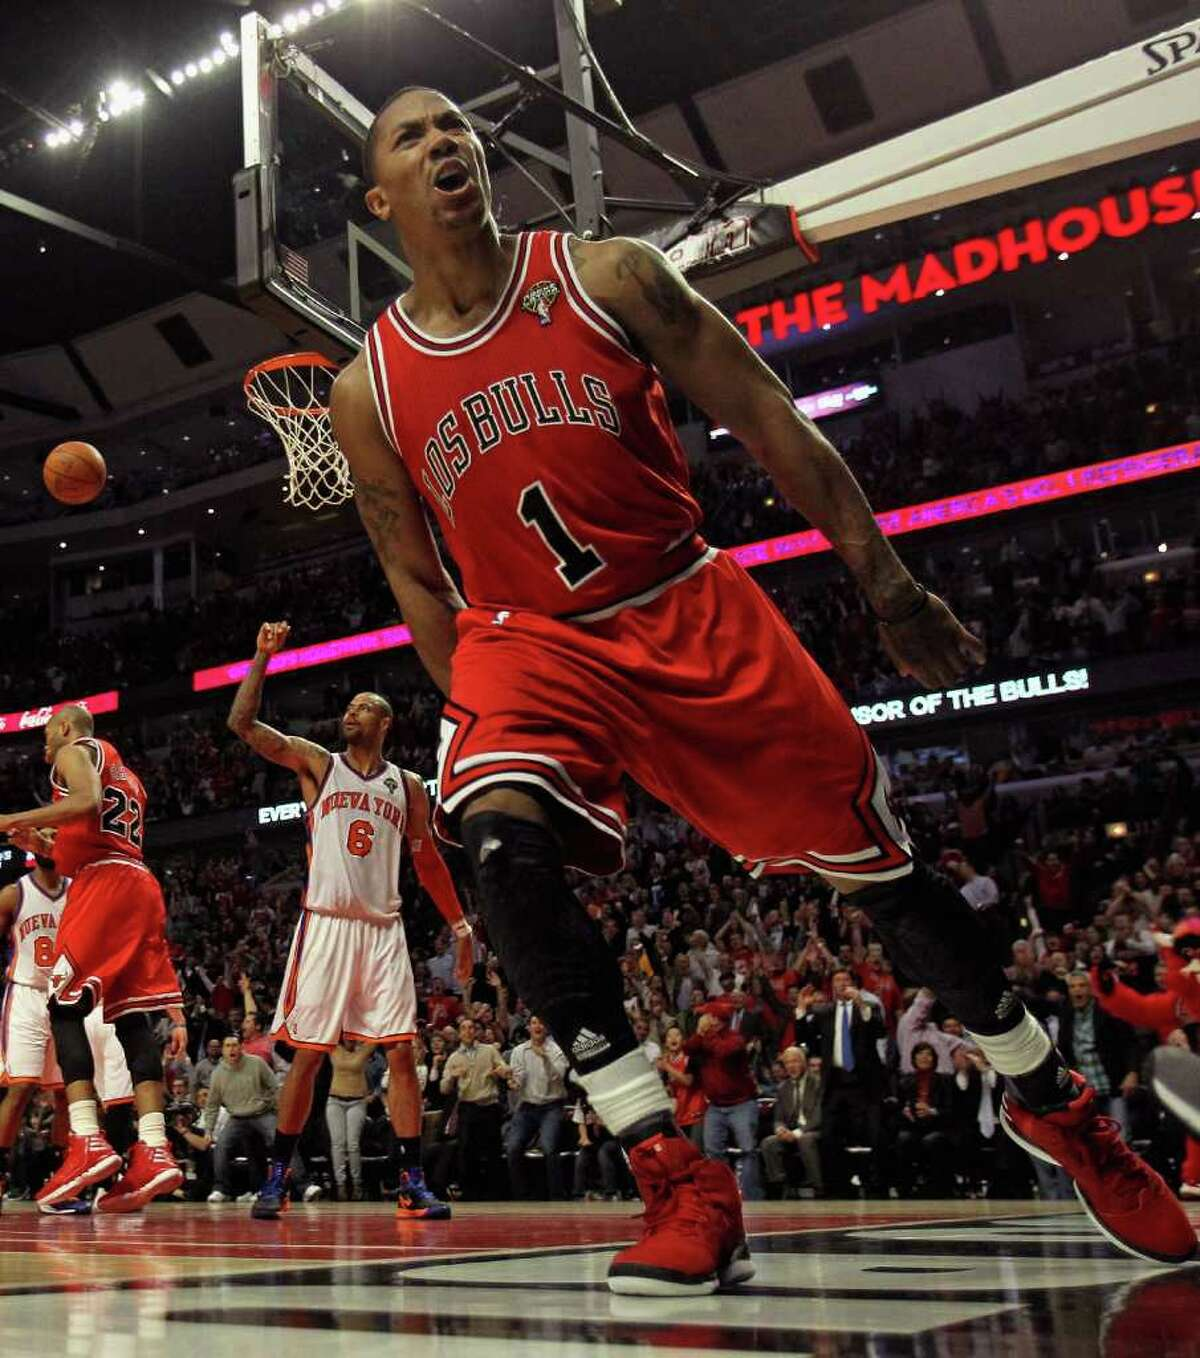 Chicago's Derrick Rose (1) feels it after a dunk against the visiting Knicks on Monday night. Rose finished with 32 points in the Bulls' 104-99 victory.